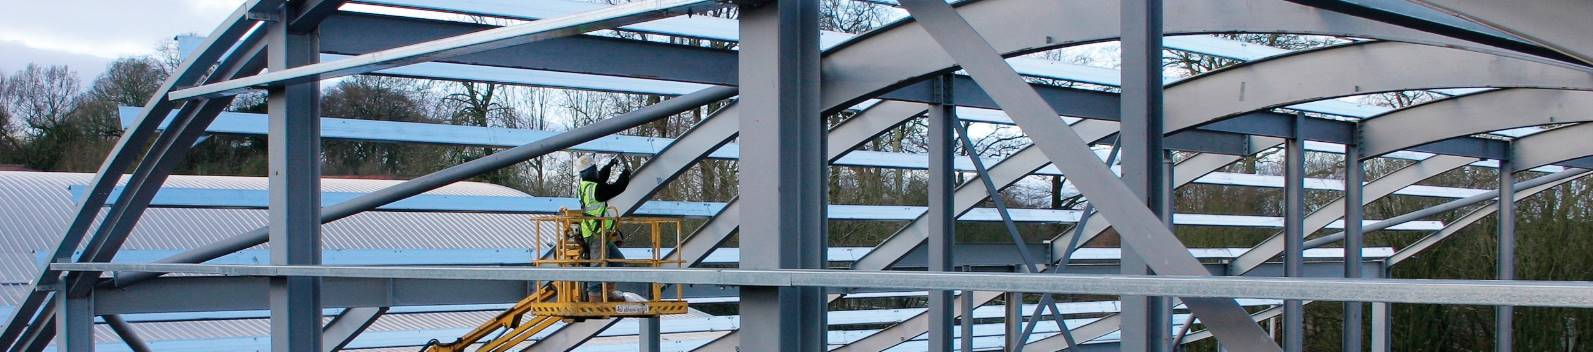 Roof Zed purlins Secondary Steelwork Manufacturer